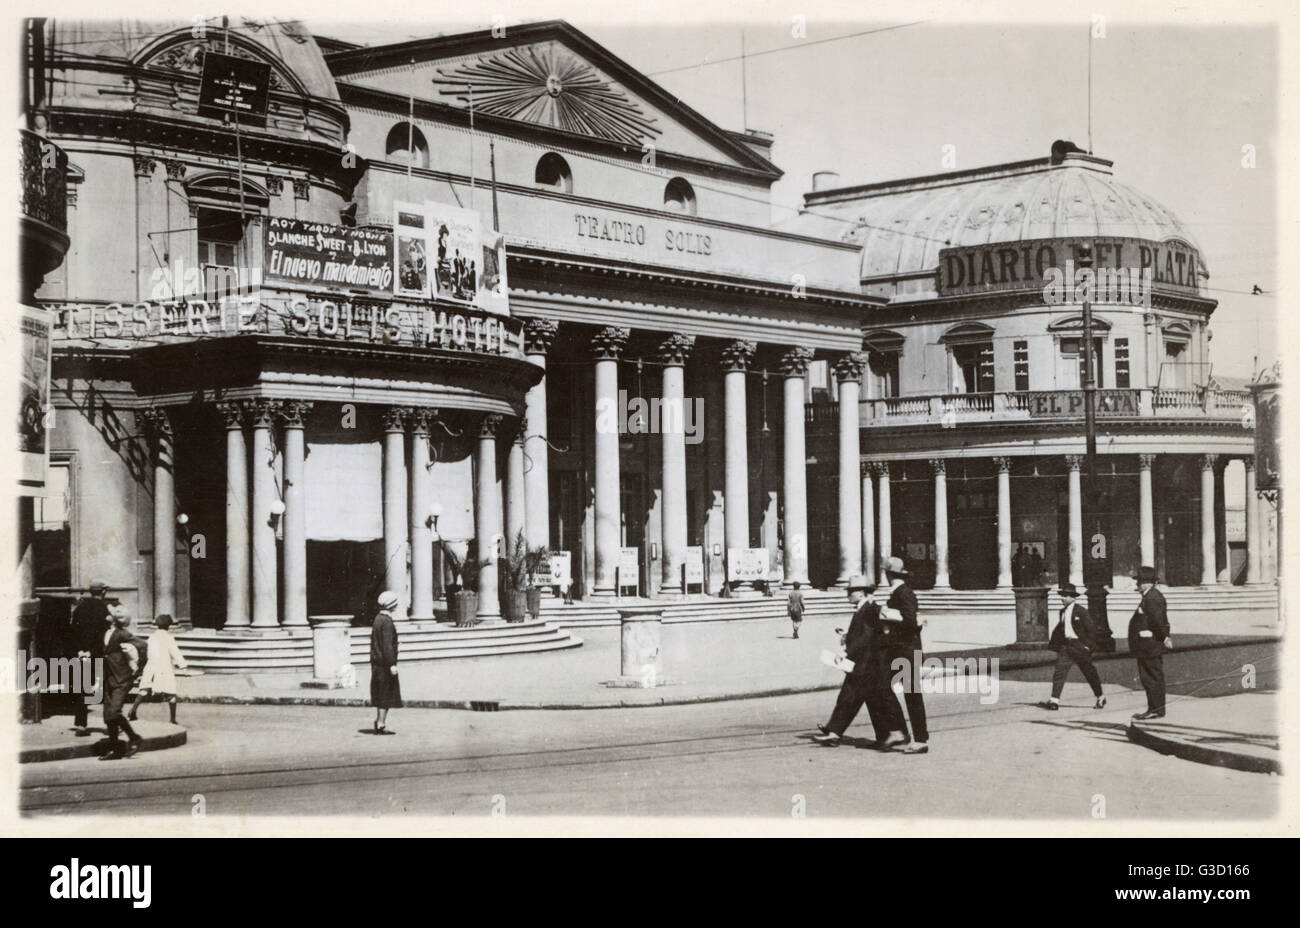 Solis Hotel, Teatro Solis (theatre and cinema) and Diario del Plata (newspaper office), Montevideo, Uruguay, South - Stock Image